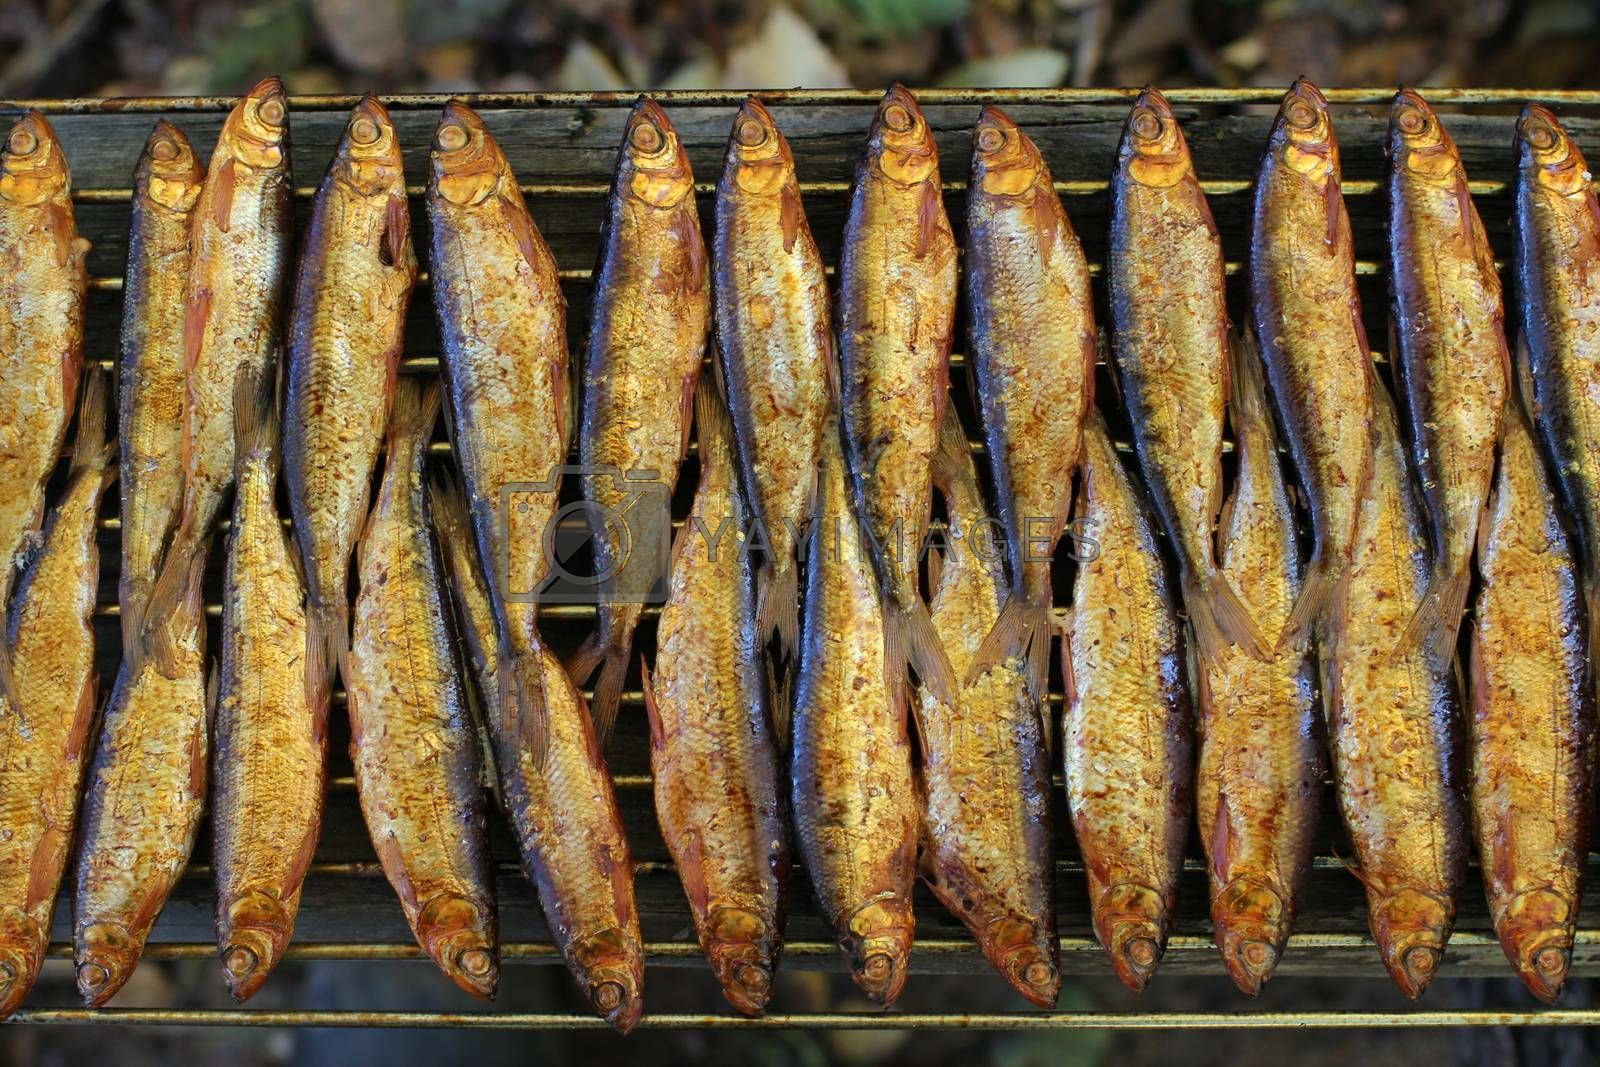 Hot smoked whitefish on the grill by mrivserg